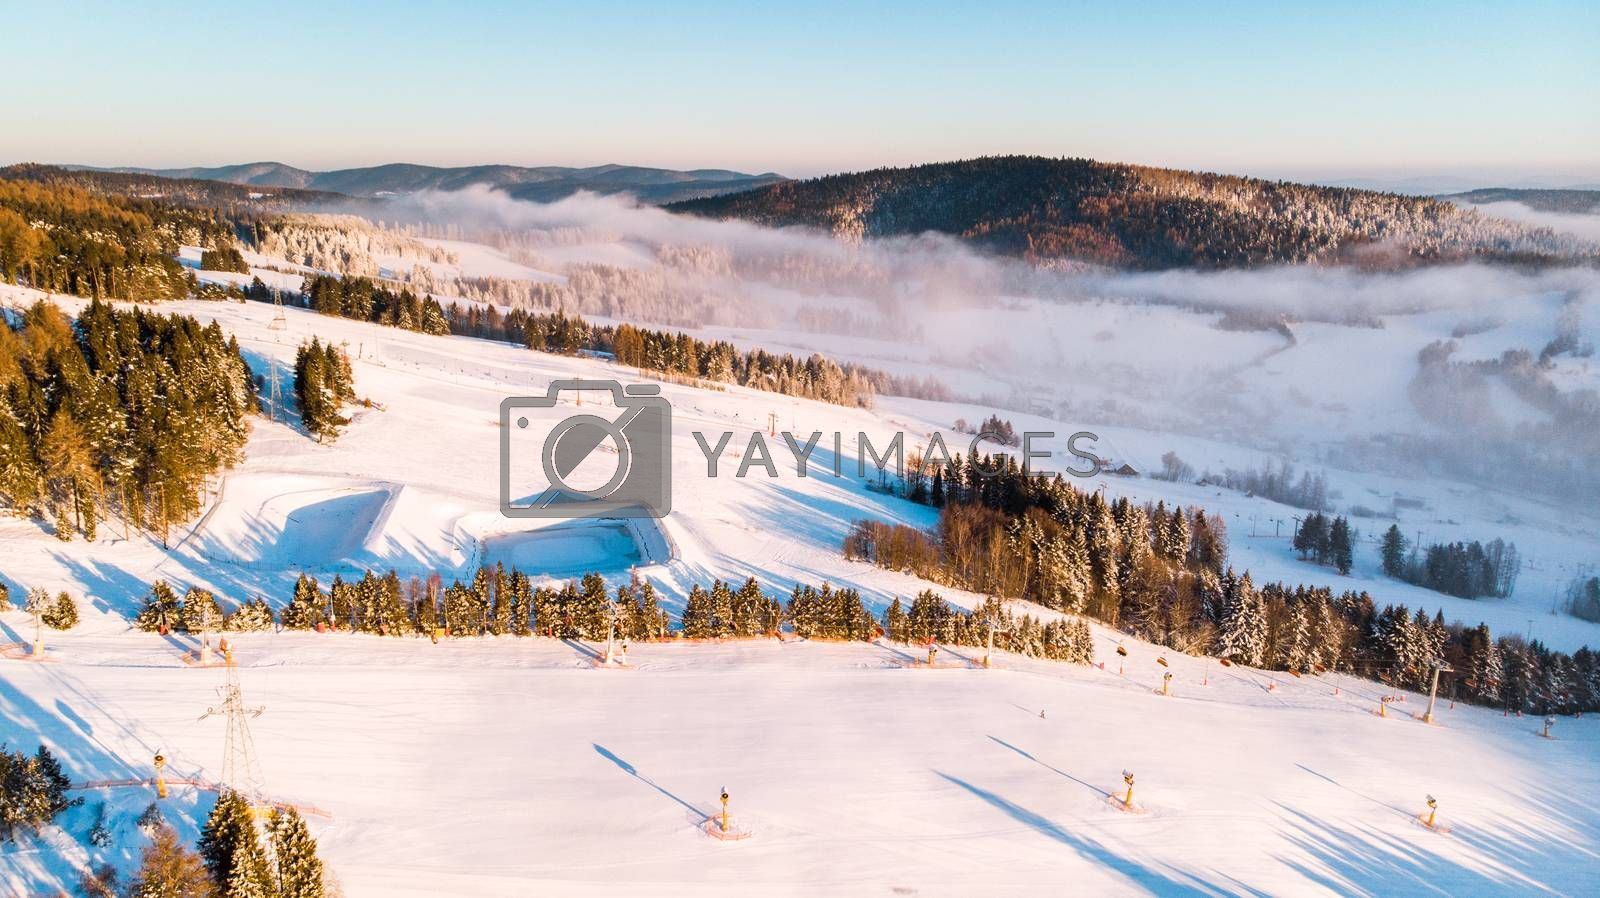 Slotwina Ski Lift near Krynica in Poland at Sunrise in Winter Se by merc67